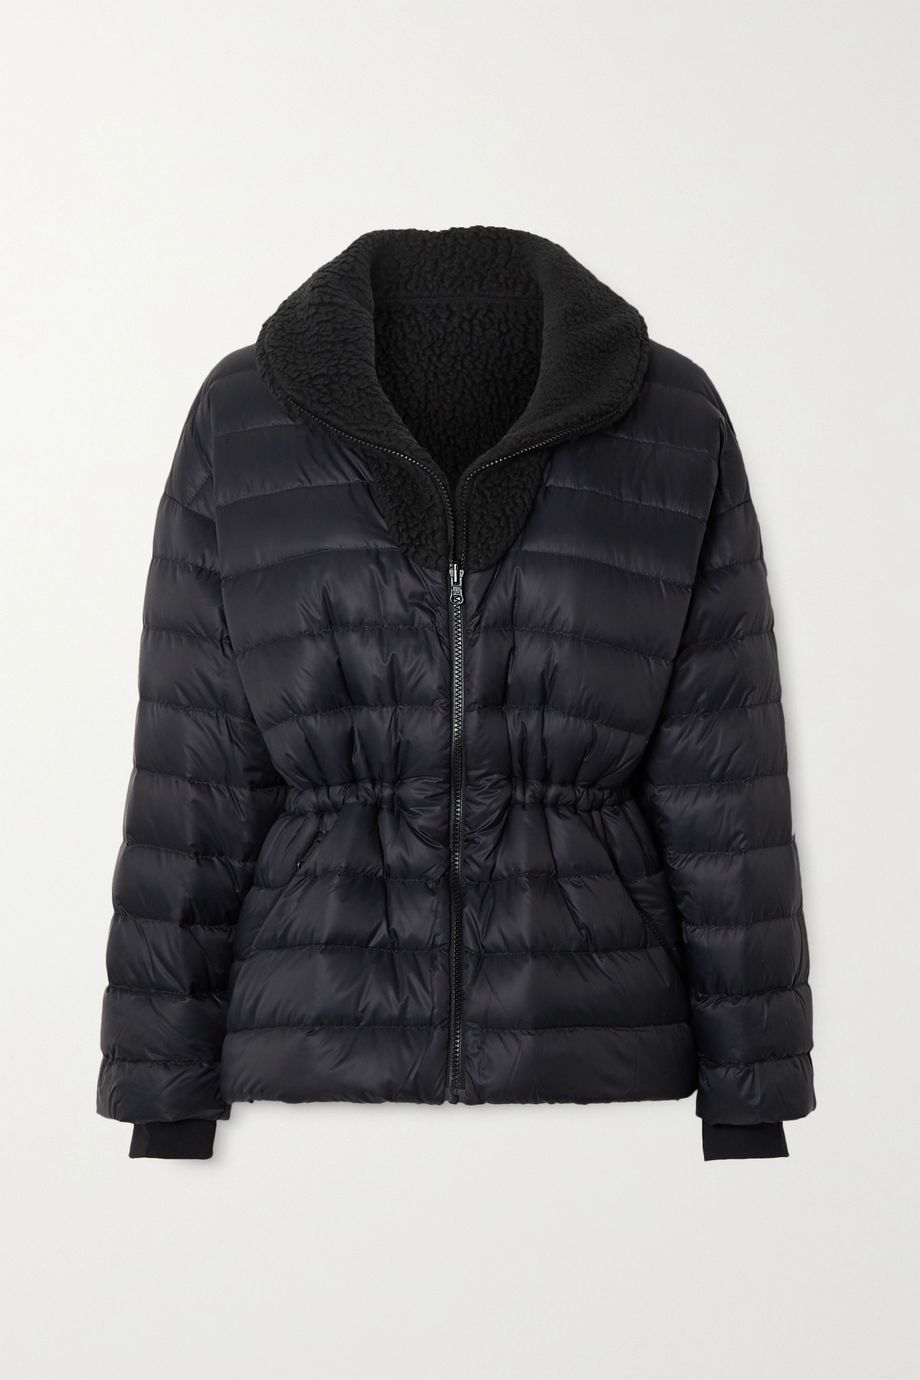 IENKI IENKI Polar reversible quilted down and shearling ski jacket